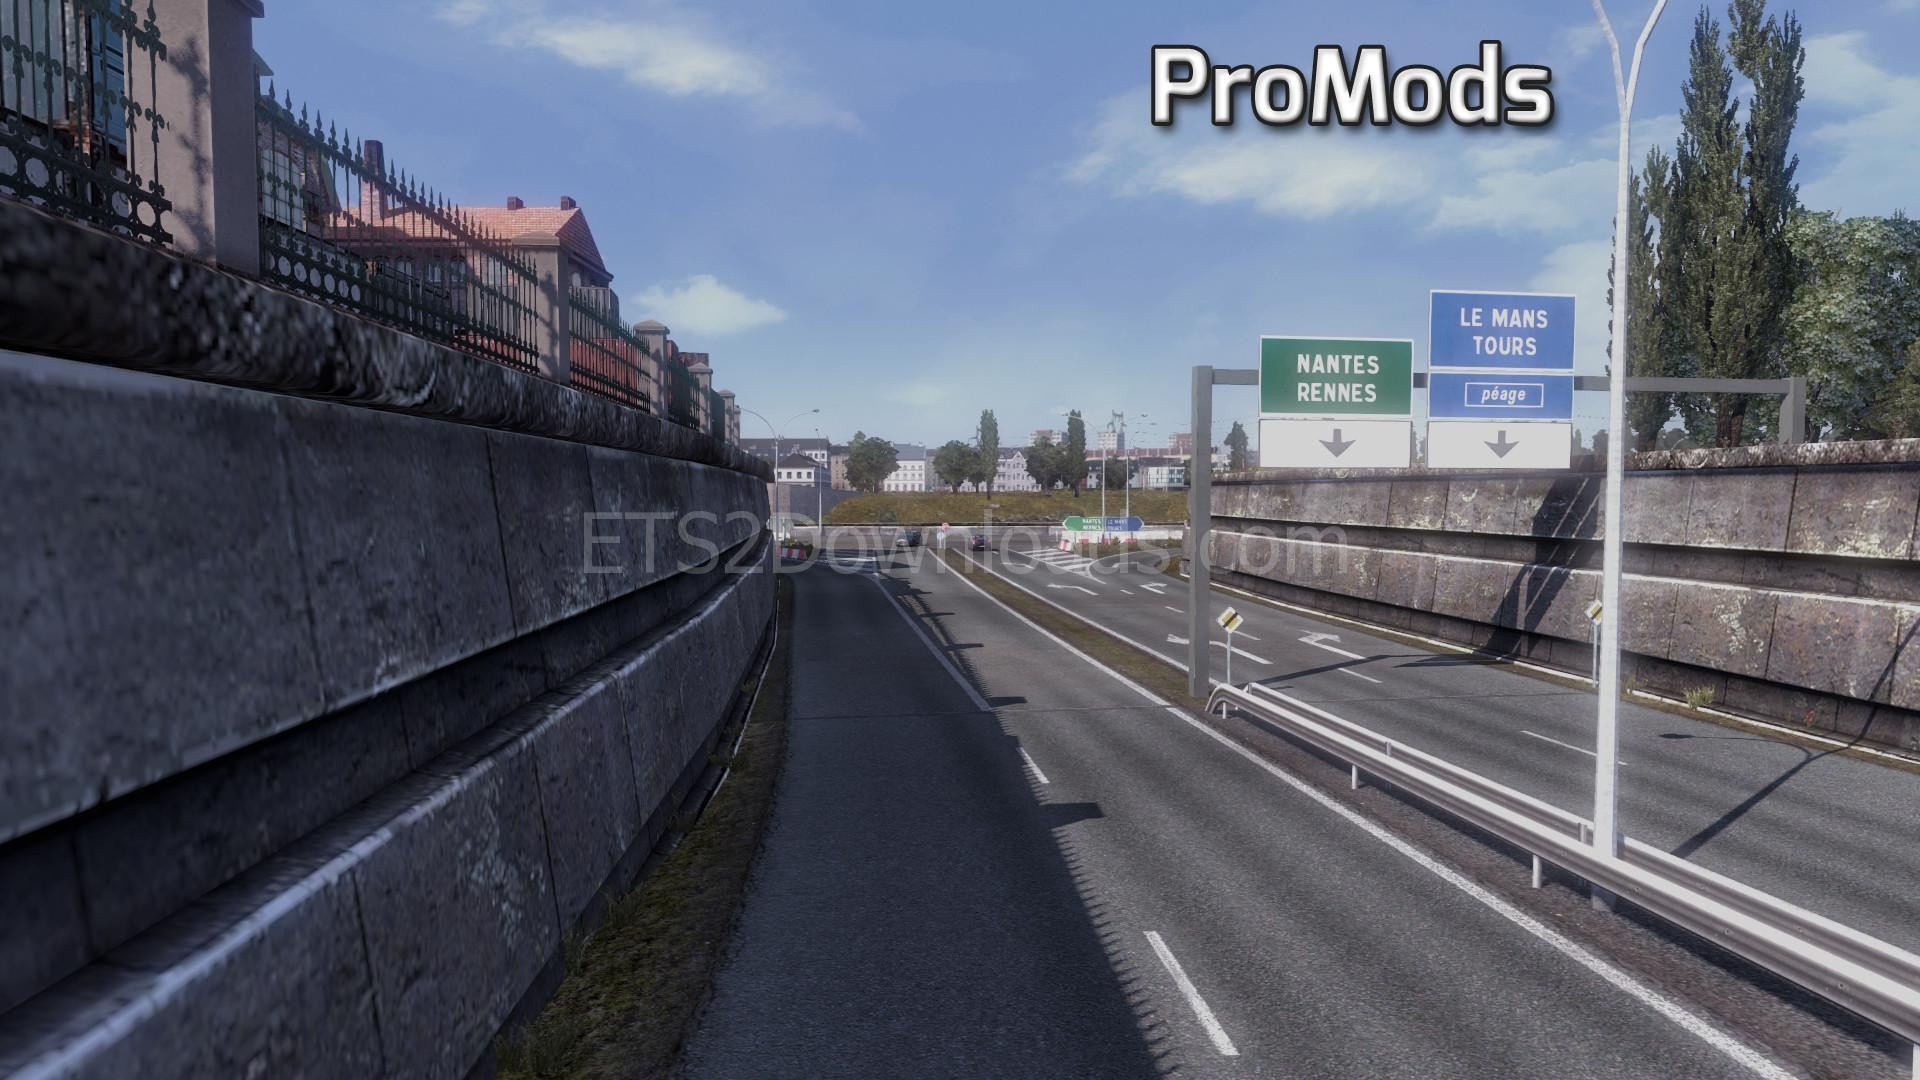 promods-v1-60-for-ets2-1-9-22-ets2-2 - ETS2 Mods